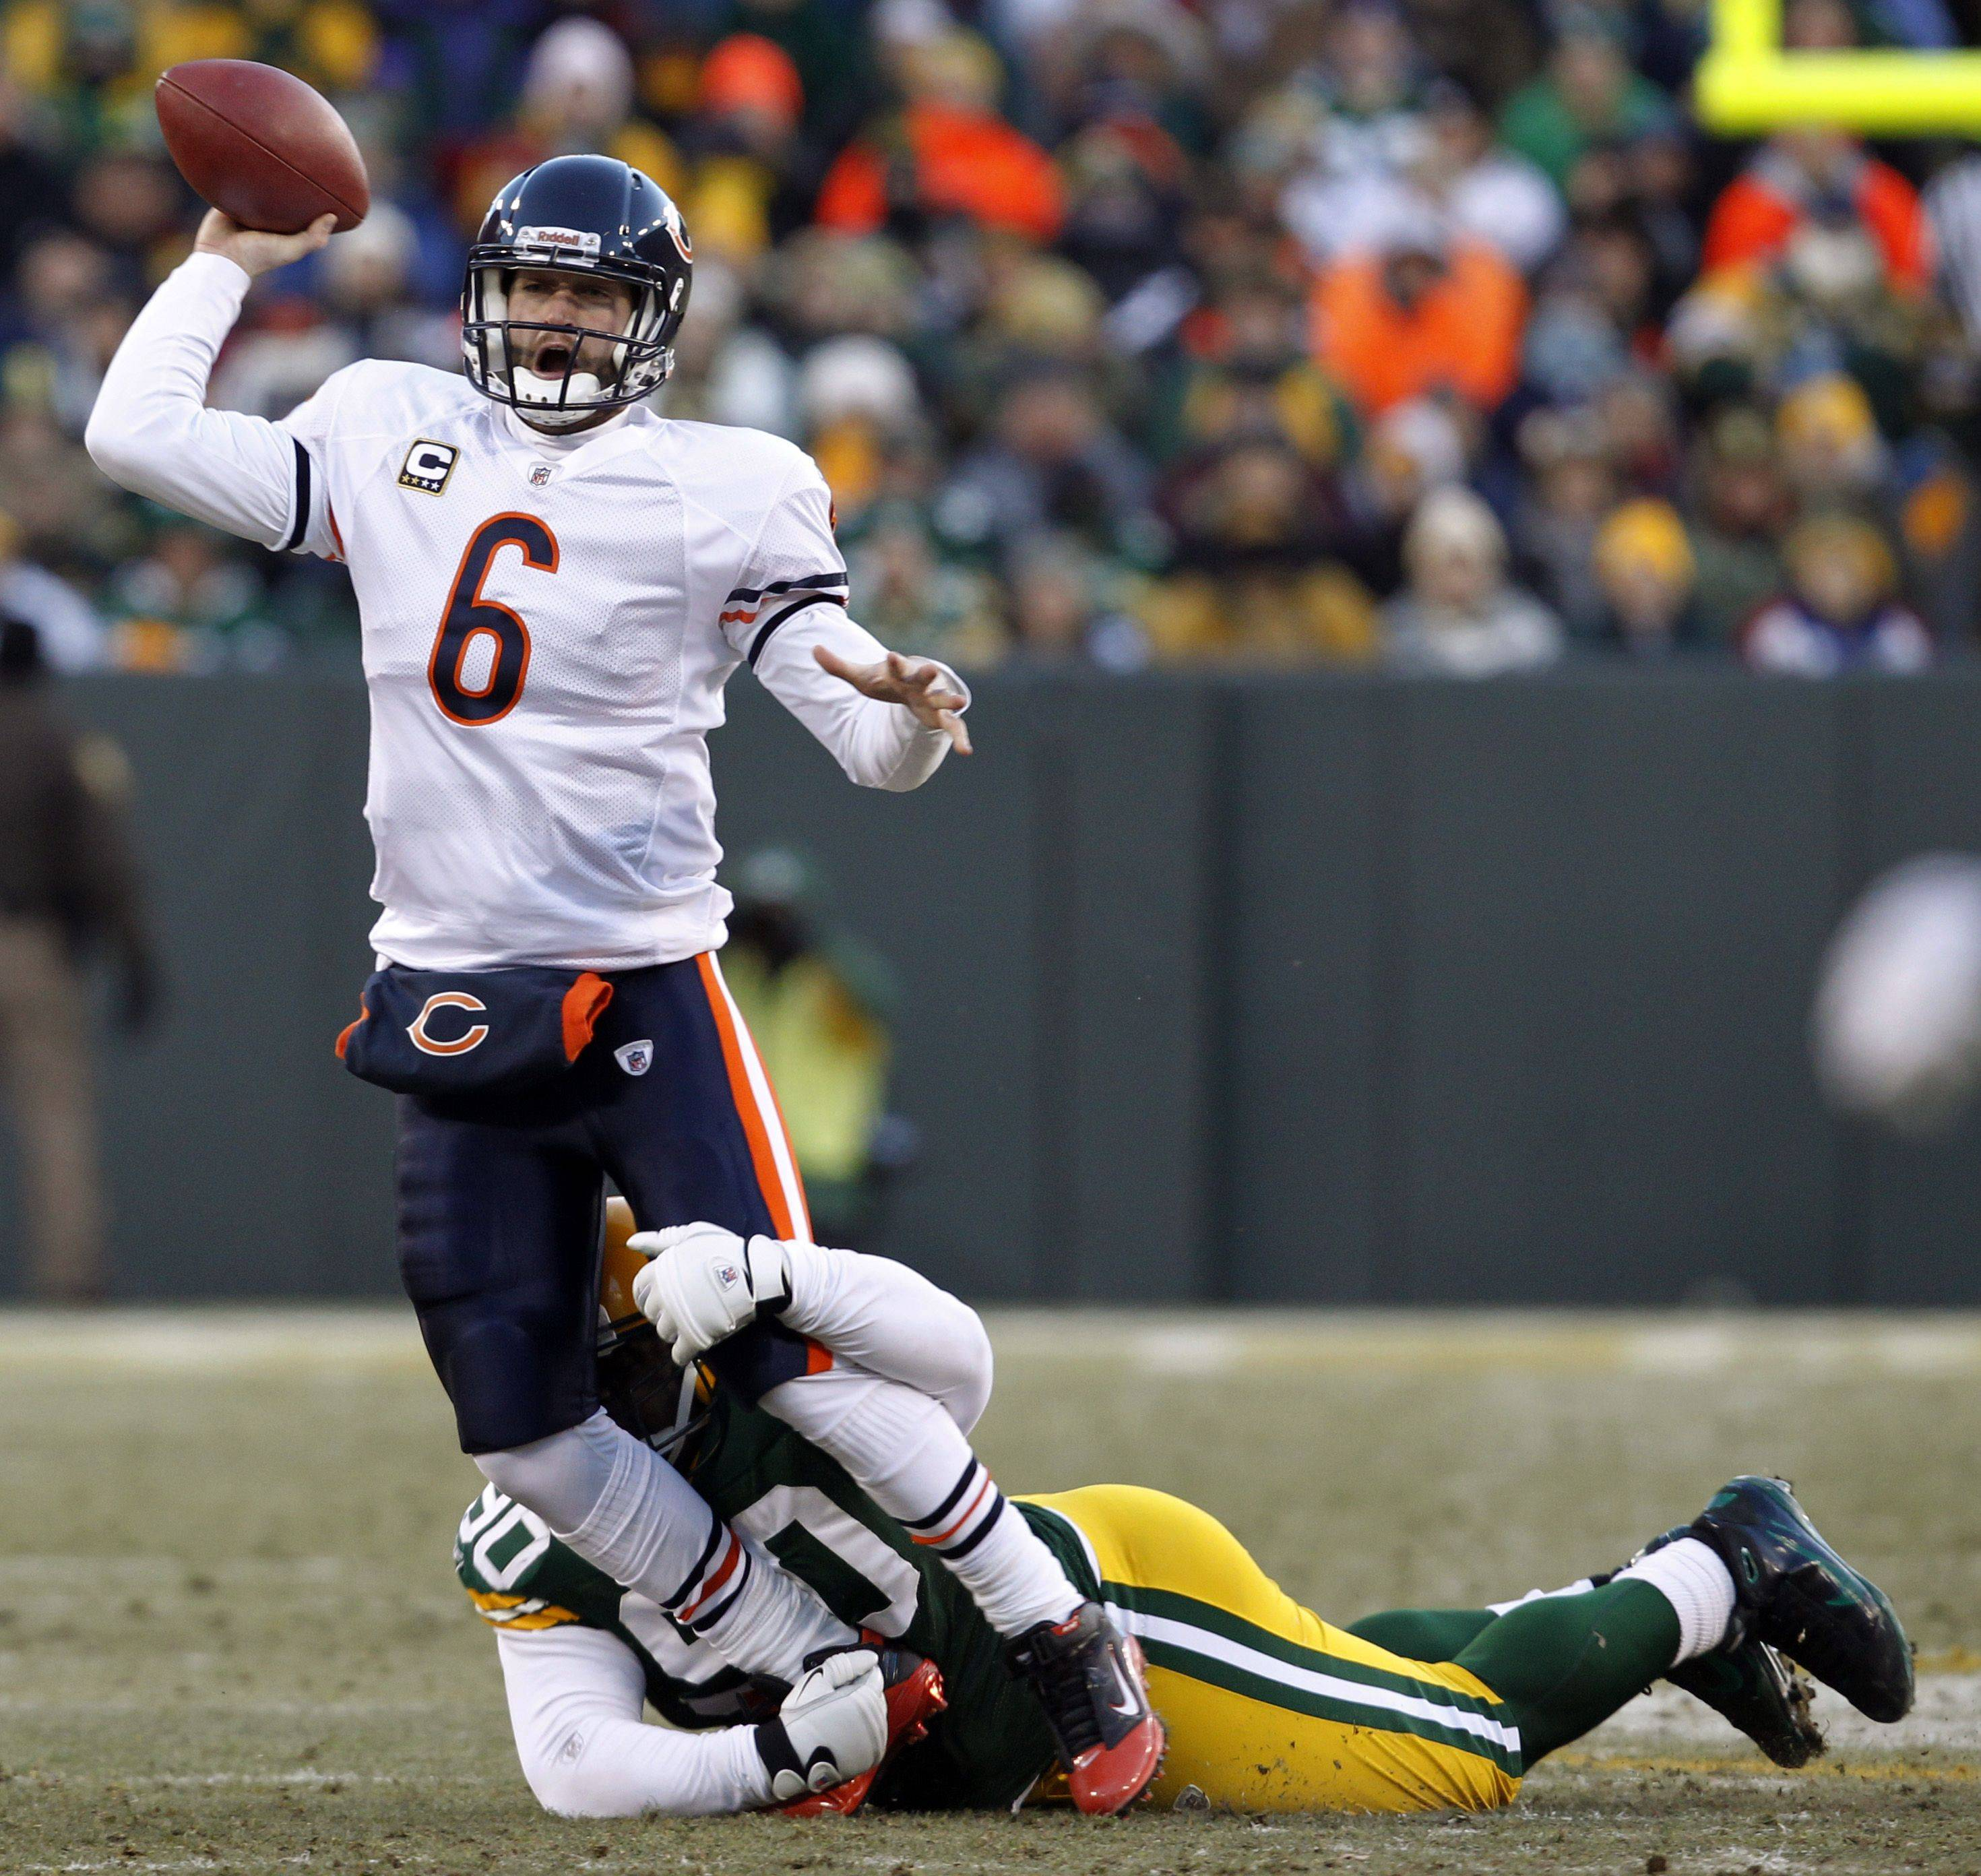 Chicago Bears' Jay Cutler throws with Green Bay Packers' B.J. Raji grasping his legs during the first half.